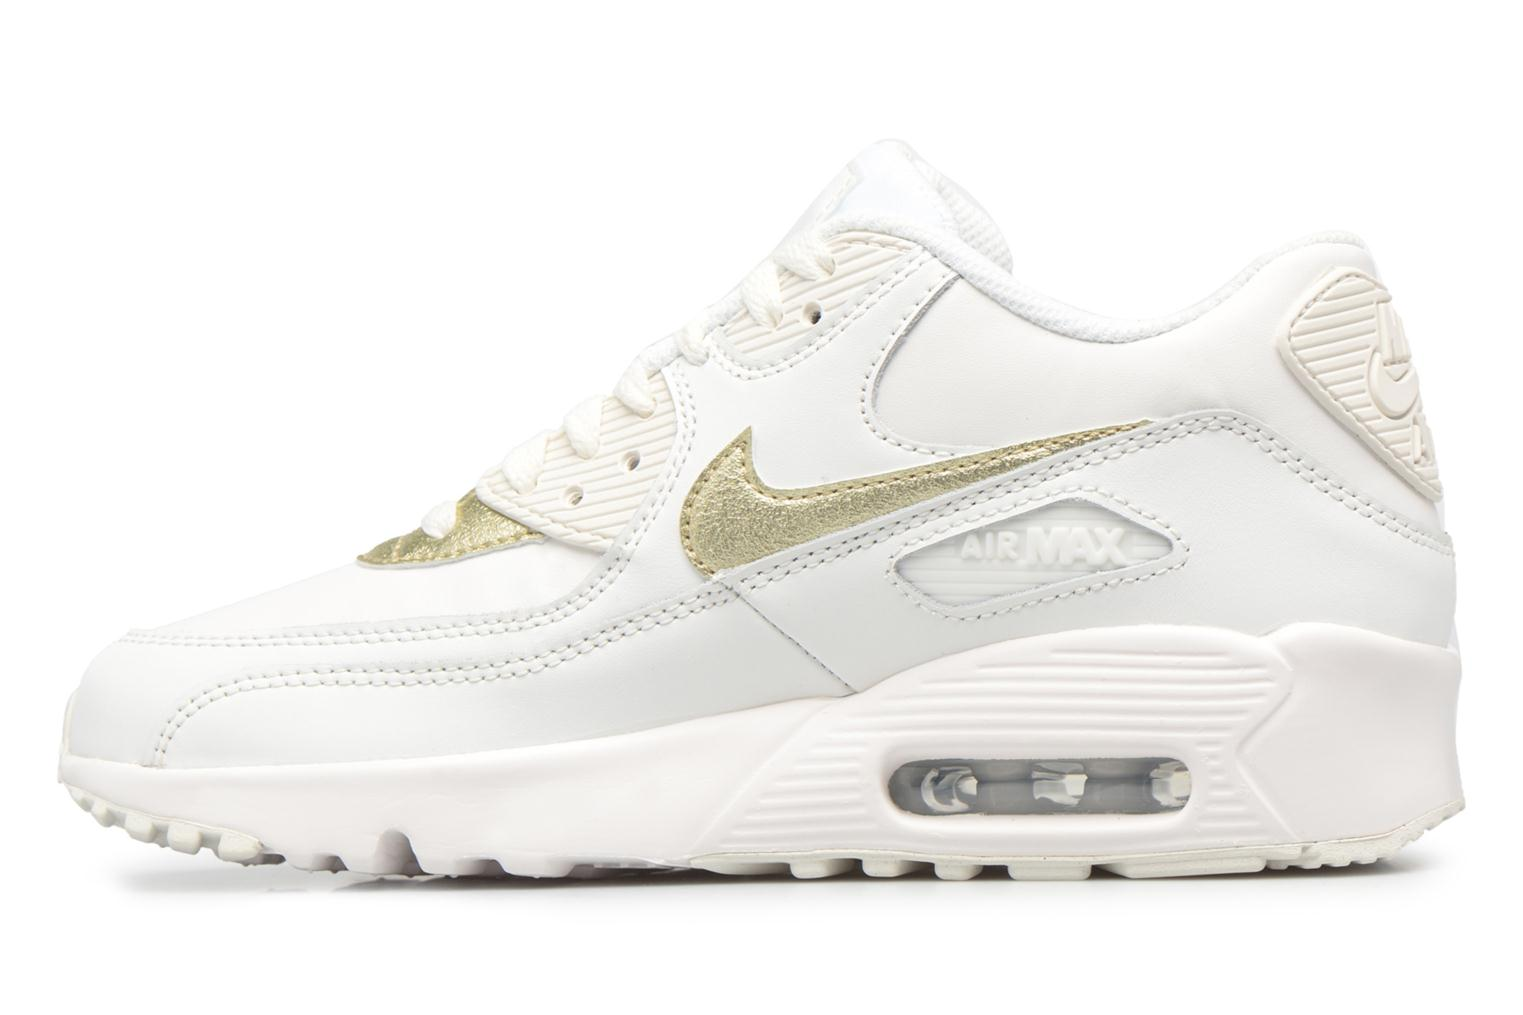 Nike Air Max 90 Ltr (Gs) Summit White/Mtlc Gold Star